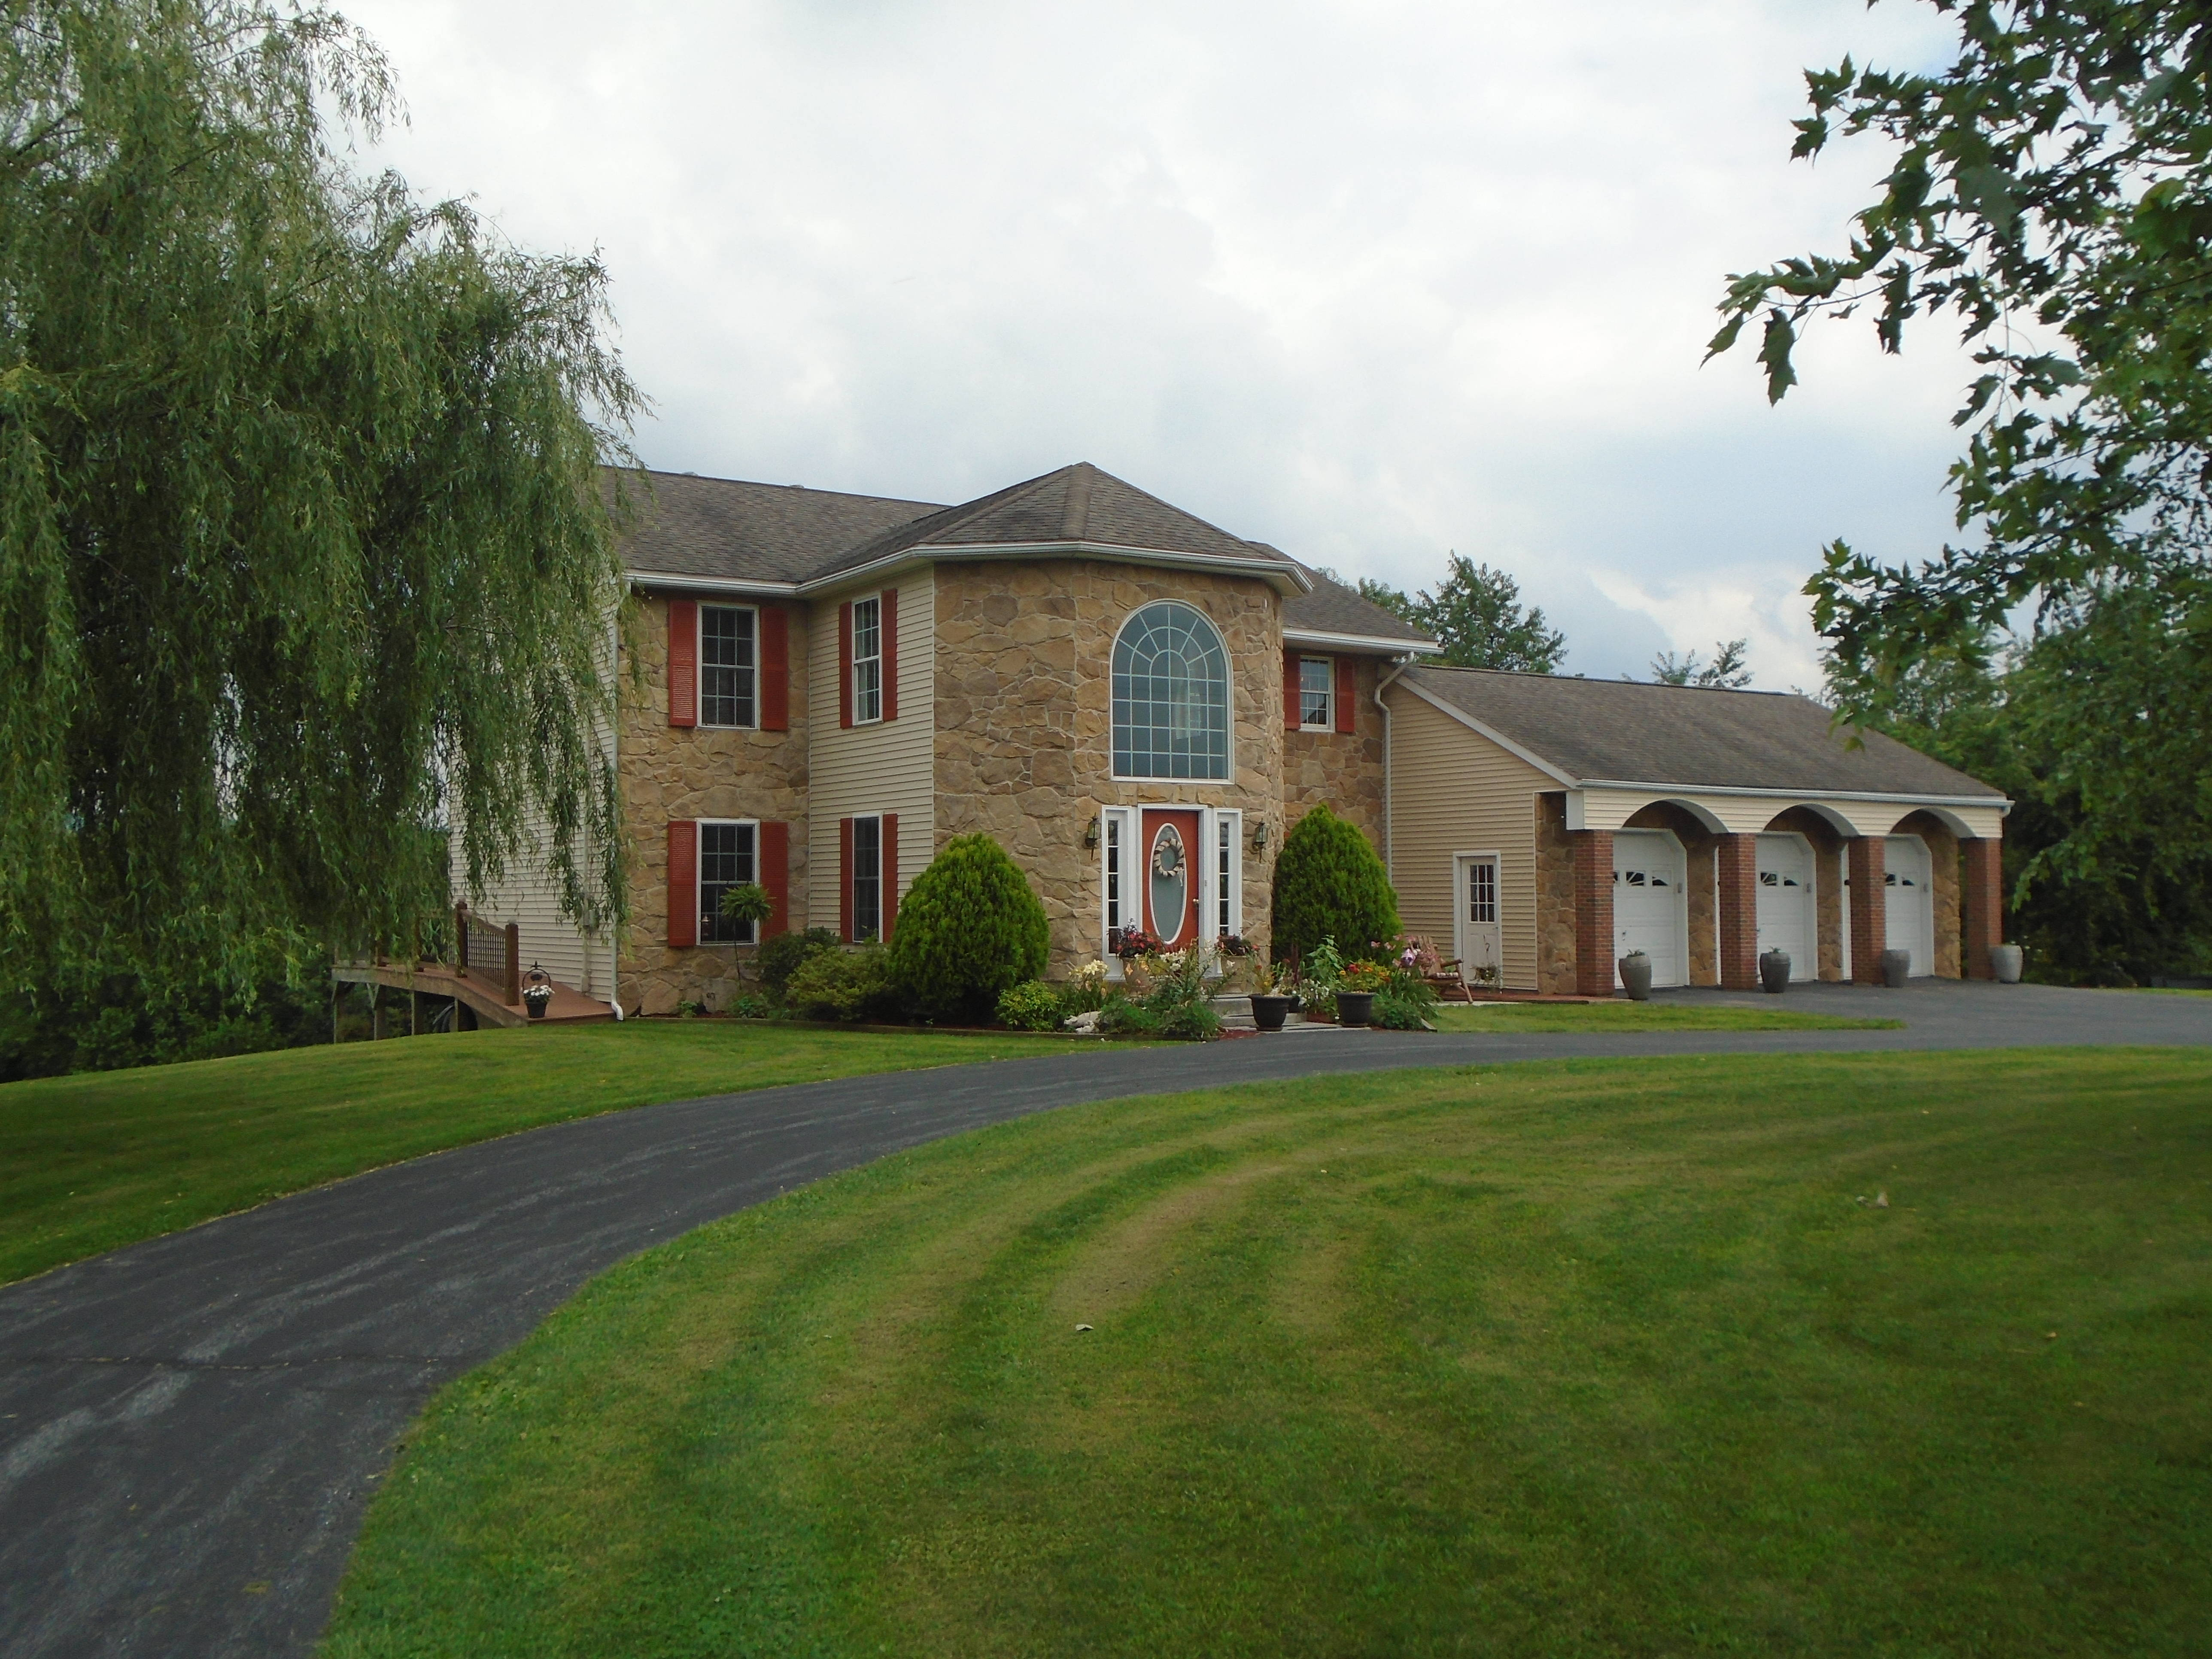 7 bedroom house.  House For Sale Waynesboro PA 7 Bedrooms 389K